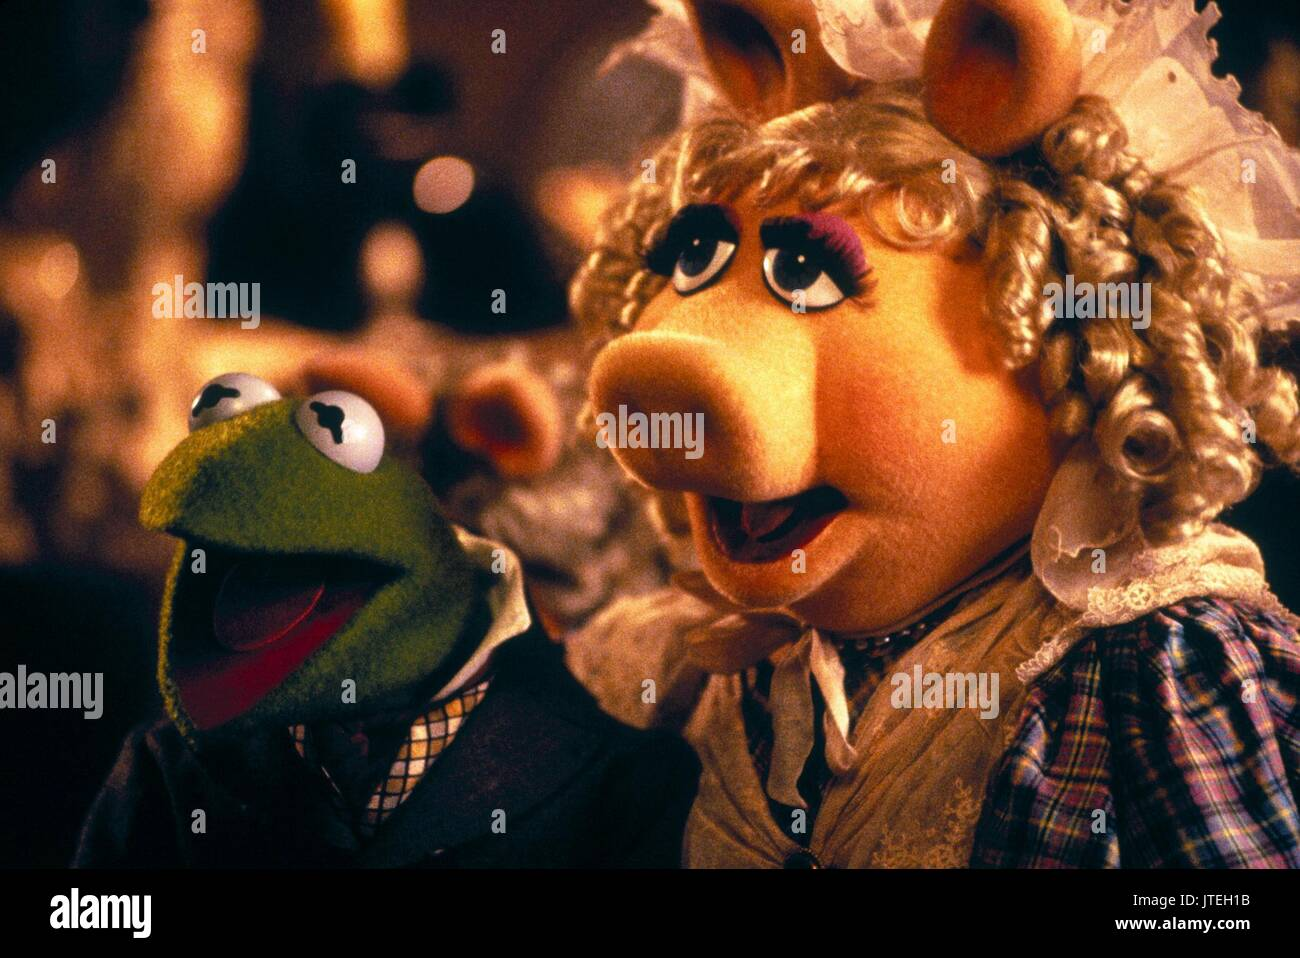 KERMIT THE FROG AS BOB CRATCHIT & MISS PIGGY AS EMILY CRATCHIT THE ...